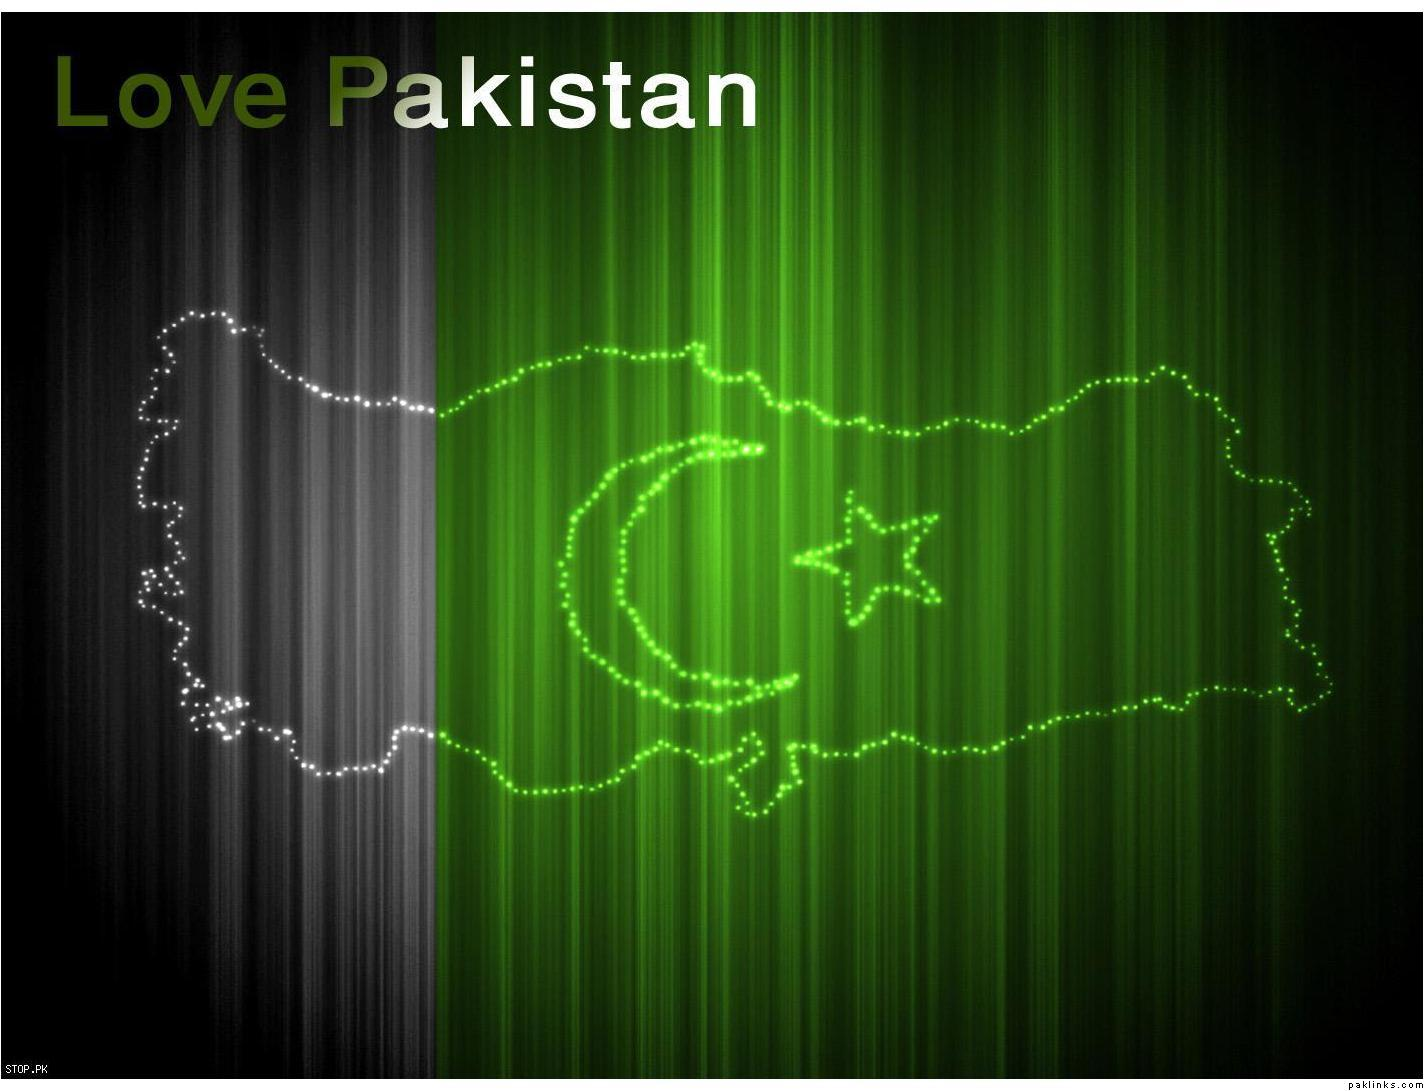 Pakistan Patriotic Library (Largest Audio/Video Collection